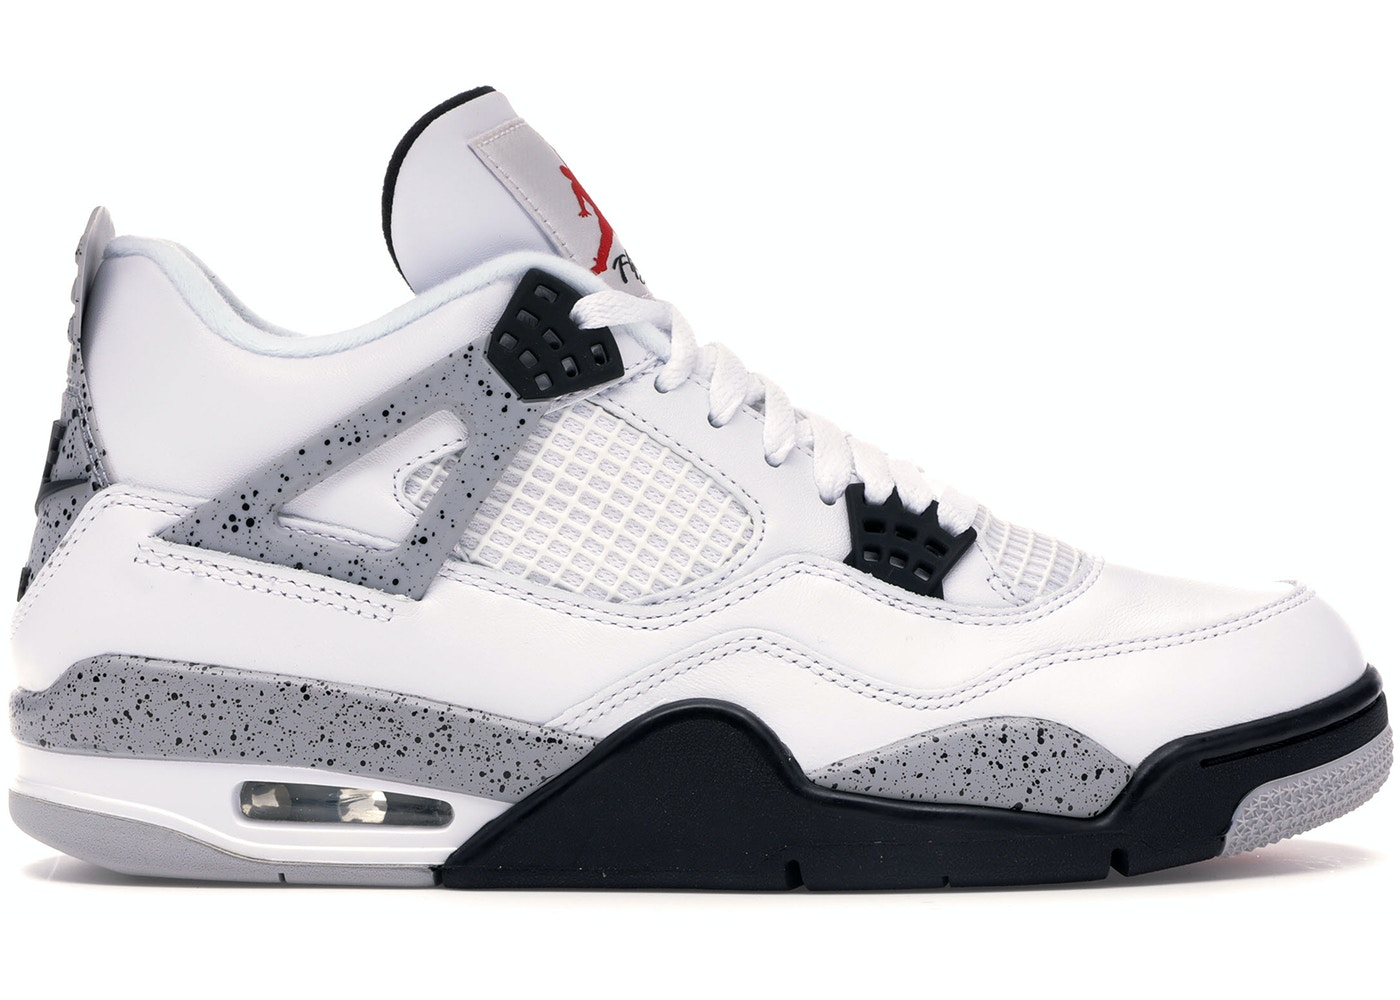 half off 6a782 7a664 Jordan 4 Retro White Cement (2016)